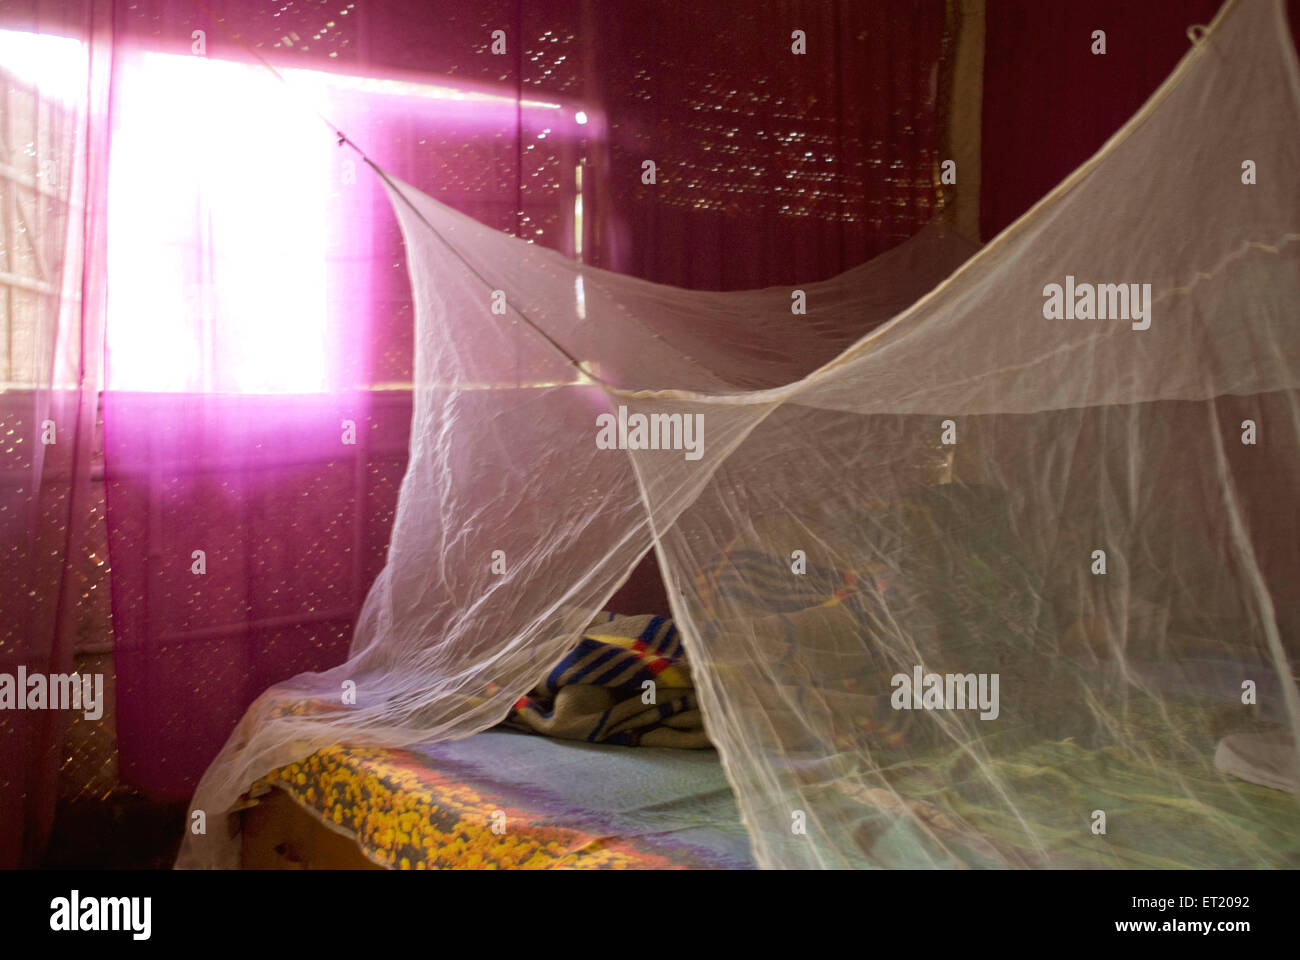 Interior of shack with pink curtains and white mosquito net covering bed ; Goa ; India - Stock Image